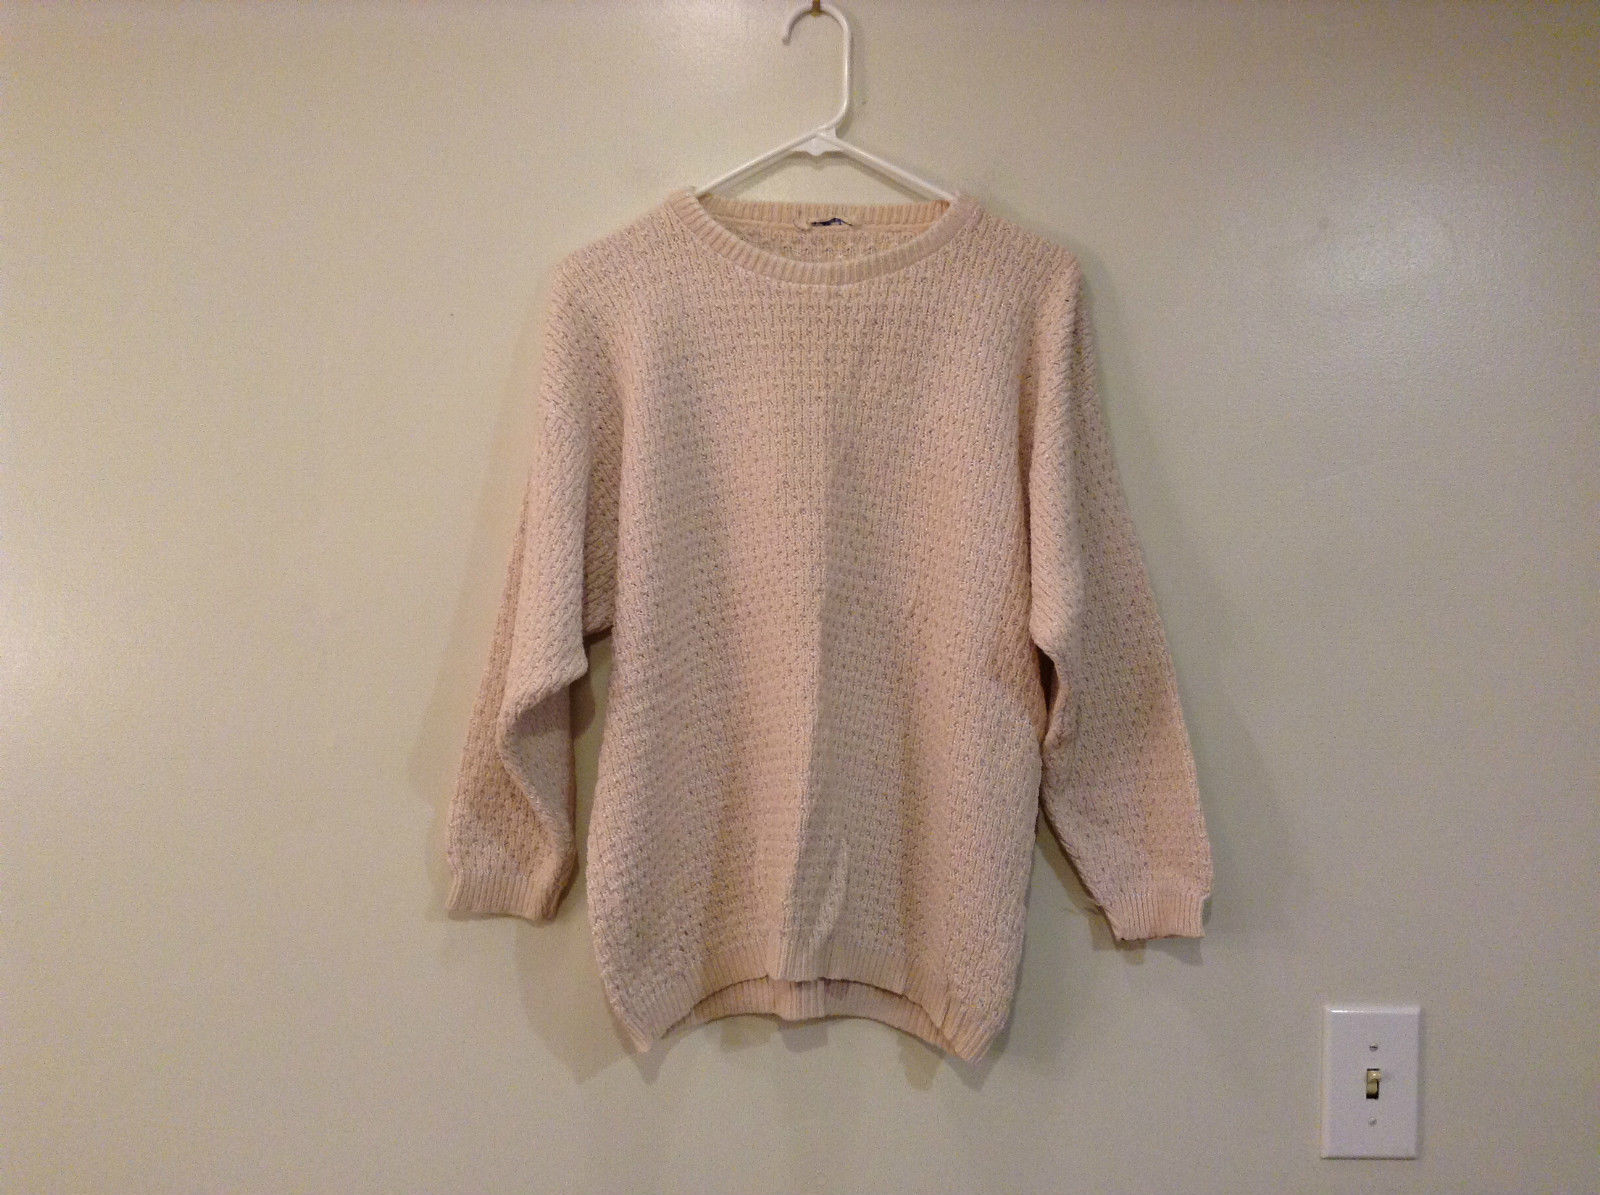 Very Light Pink Ann Taylor Short Sleeve Sweater No Tags Measurements Below